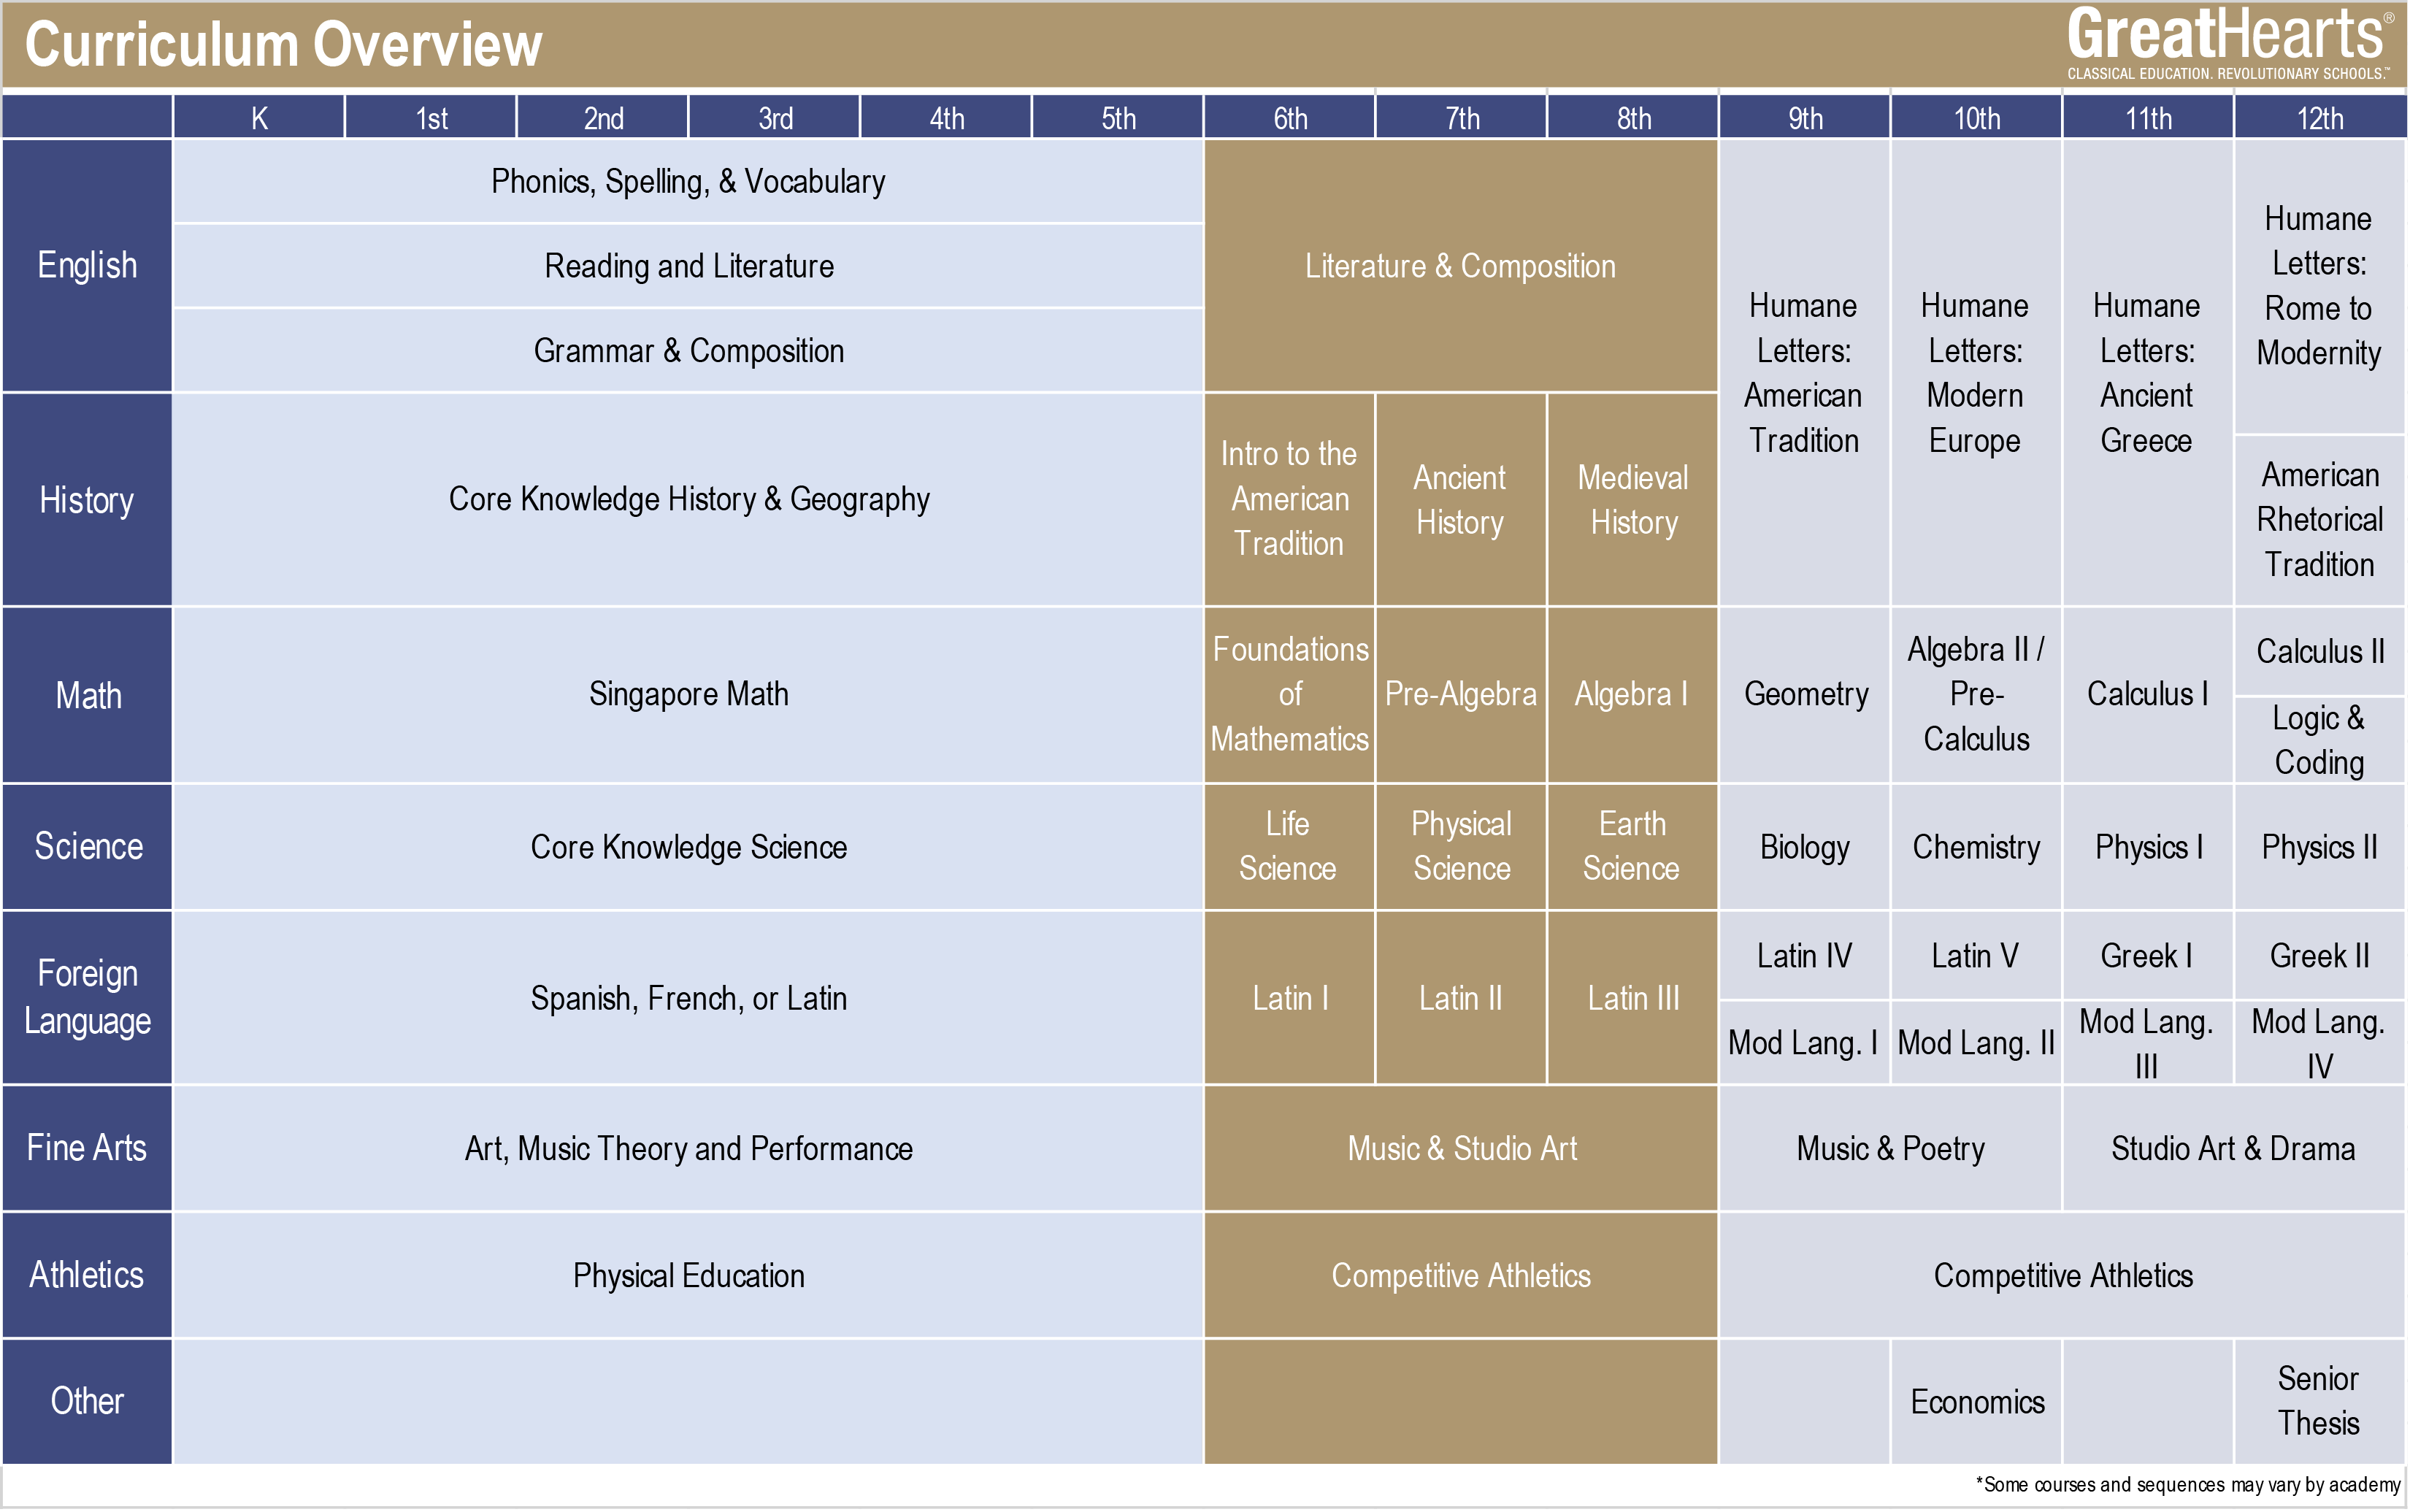 Great Hearts K-12 Curriculum Grid